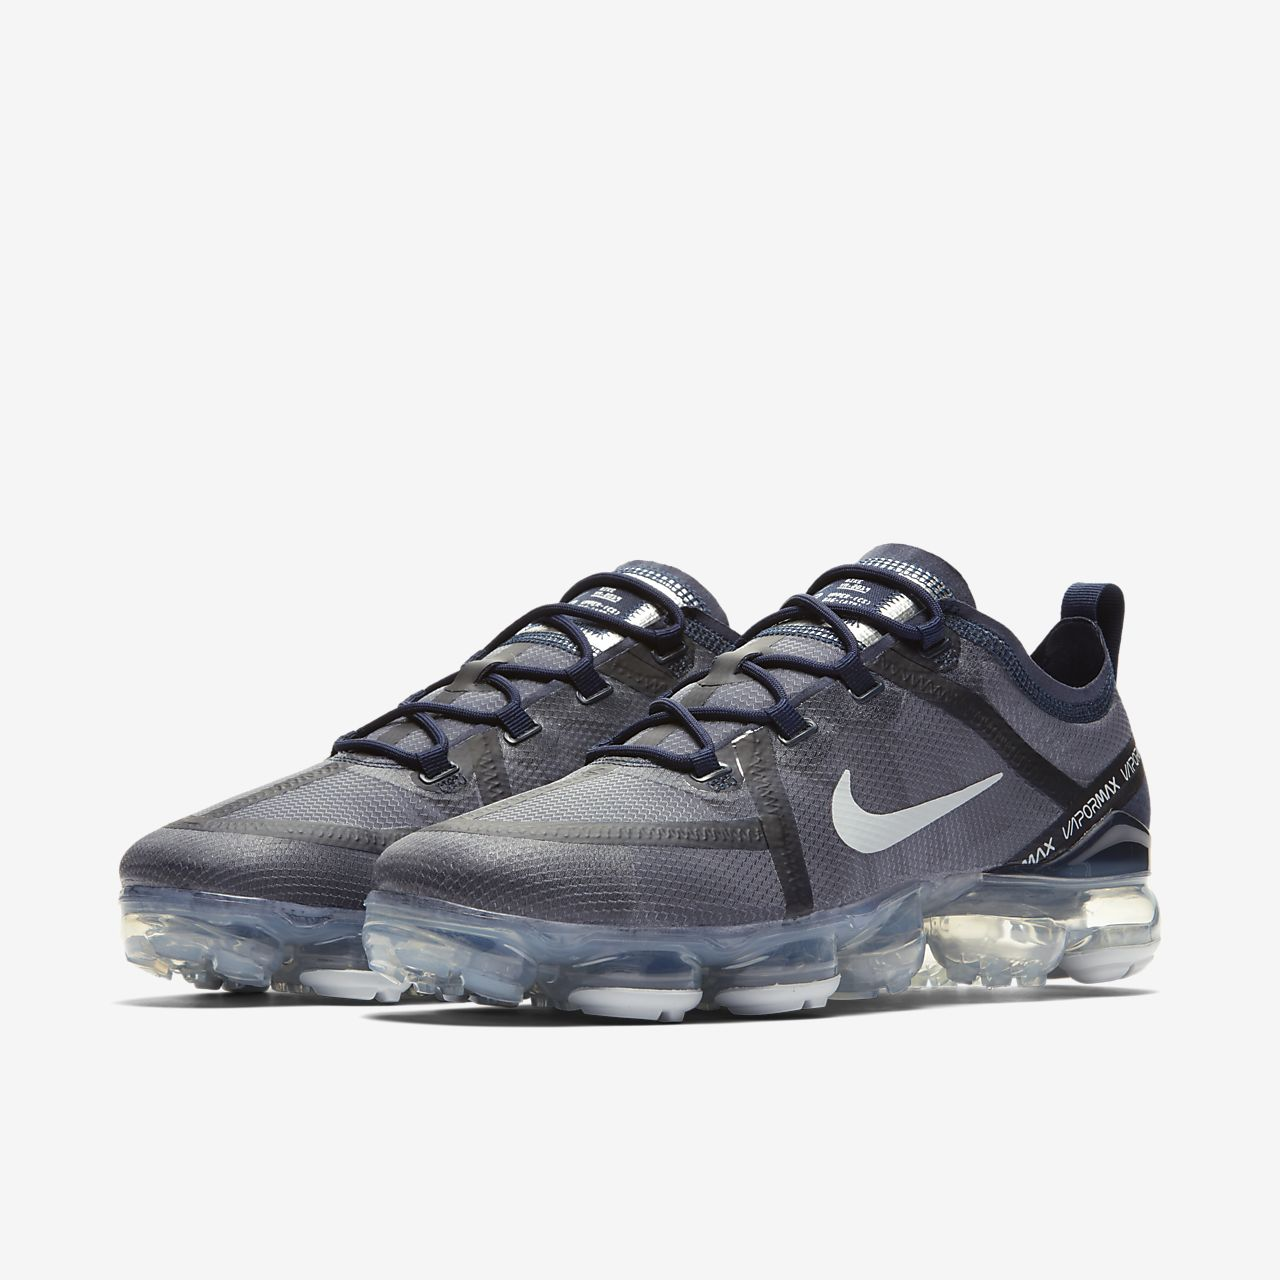 Pour Air Vapormax Nike Hommebe 2019 Chaussure Yh9weid2 BoxeCrd